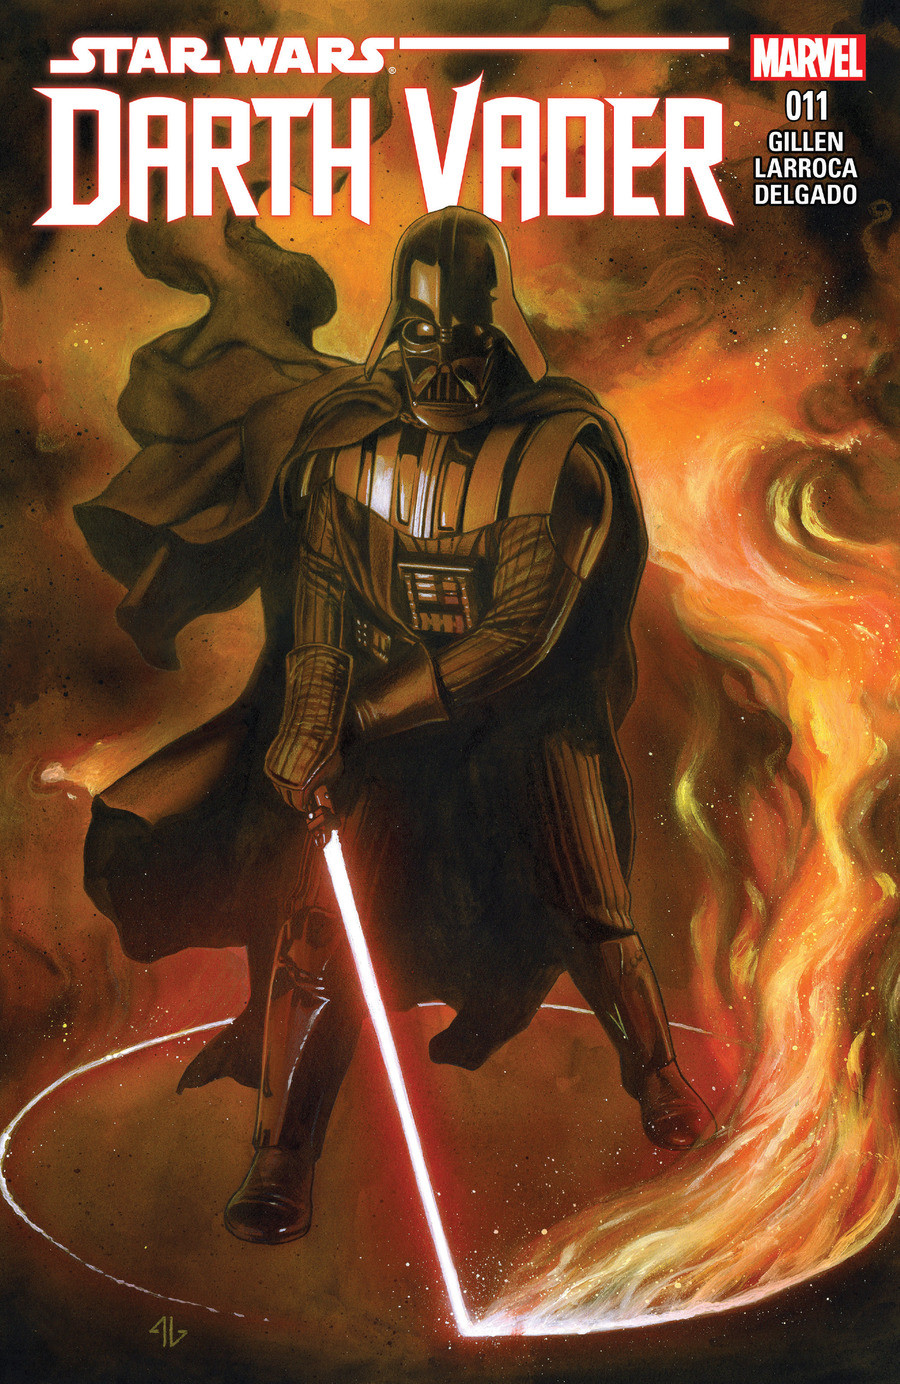 Star Wars Darth Vader issue 11. Its 2017, so i decided to celebrate by uploading the 11th issue of the Darth Vader comic series. Click the lists mention history